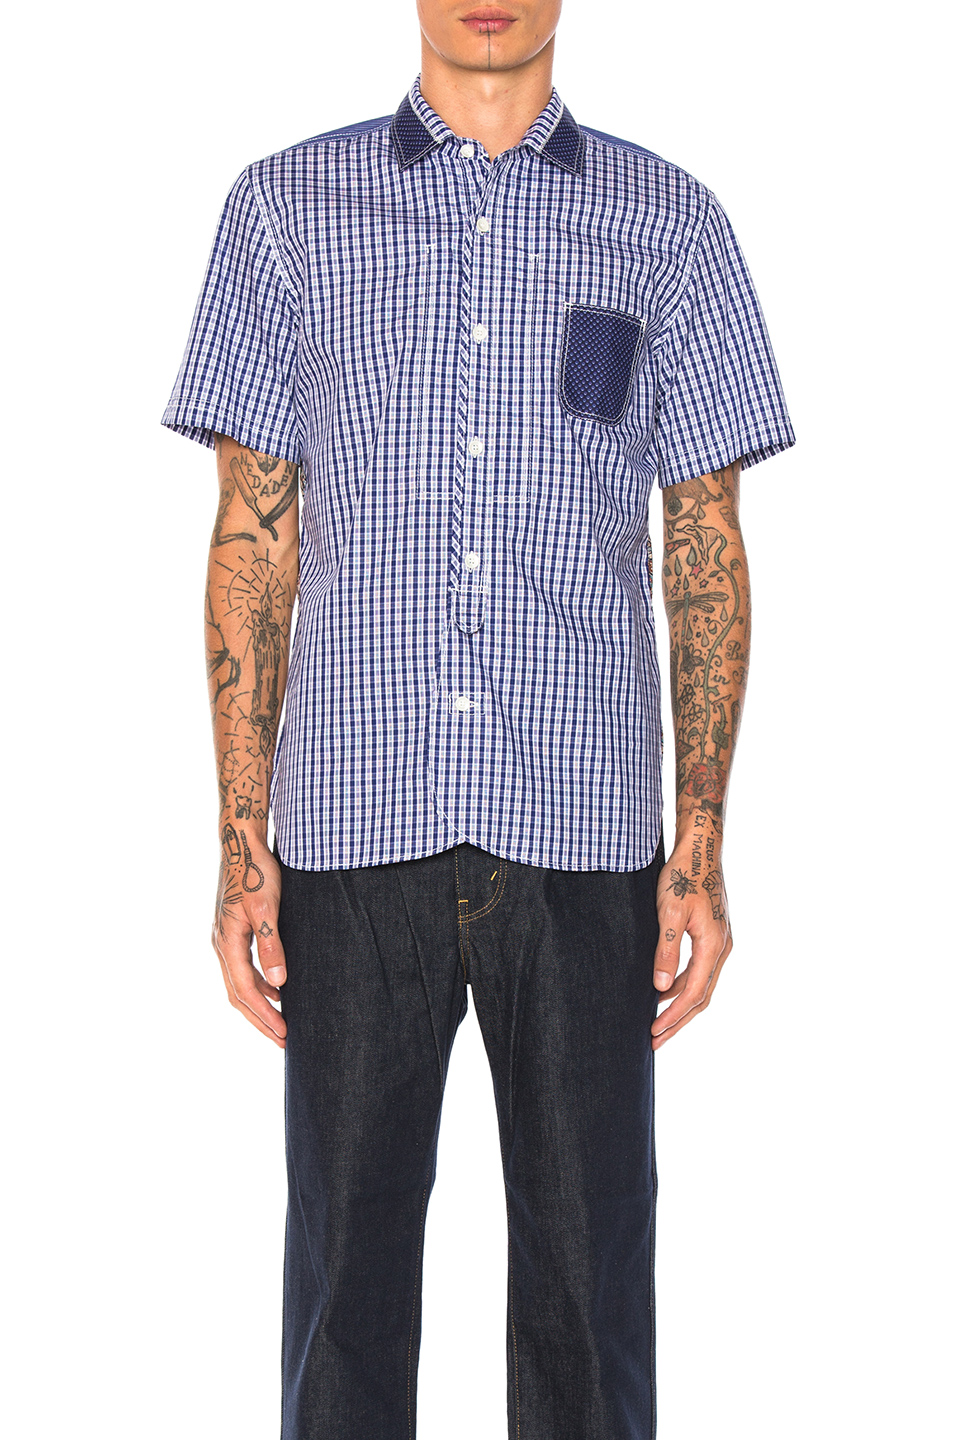 Junya Watanabe Cotton Tartan Check & Cotton Stripe Shirt in Abstract,Blue,Checkered & Plaid,White